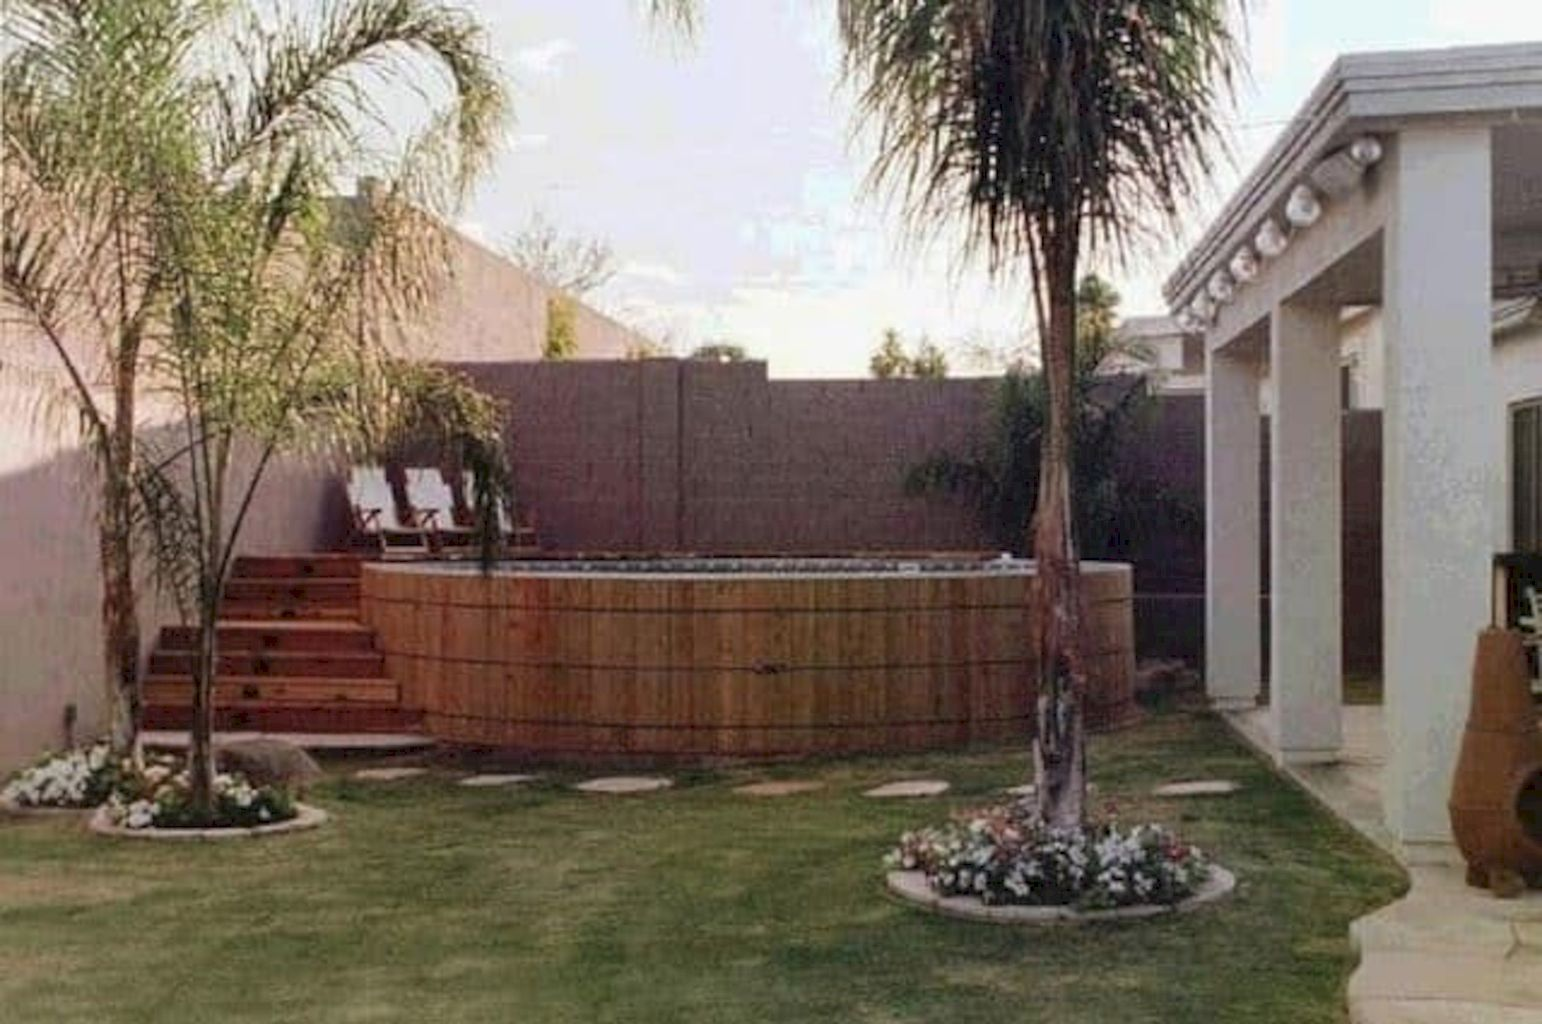 Simple pool designs built above ground designed with cheap materials for simple outdoor relieves Image 18